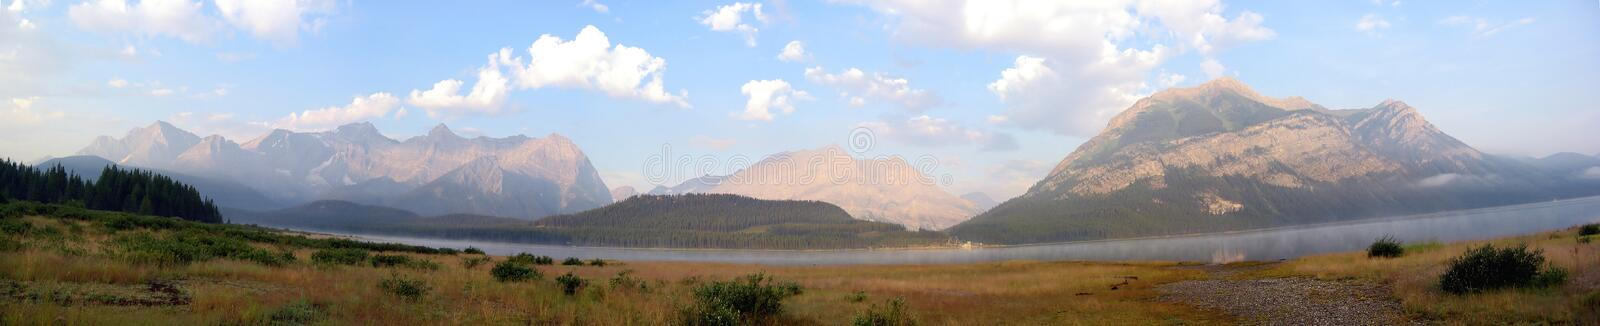 Blue Skies Mountain Panoramic royalty free stock image